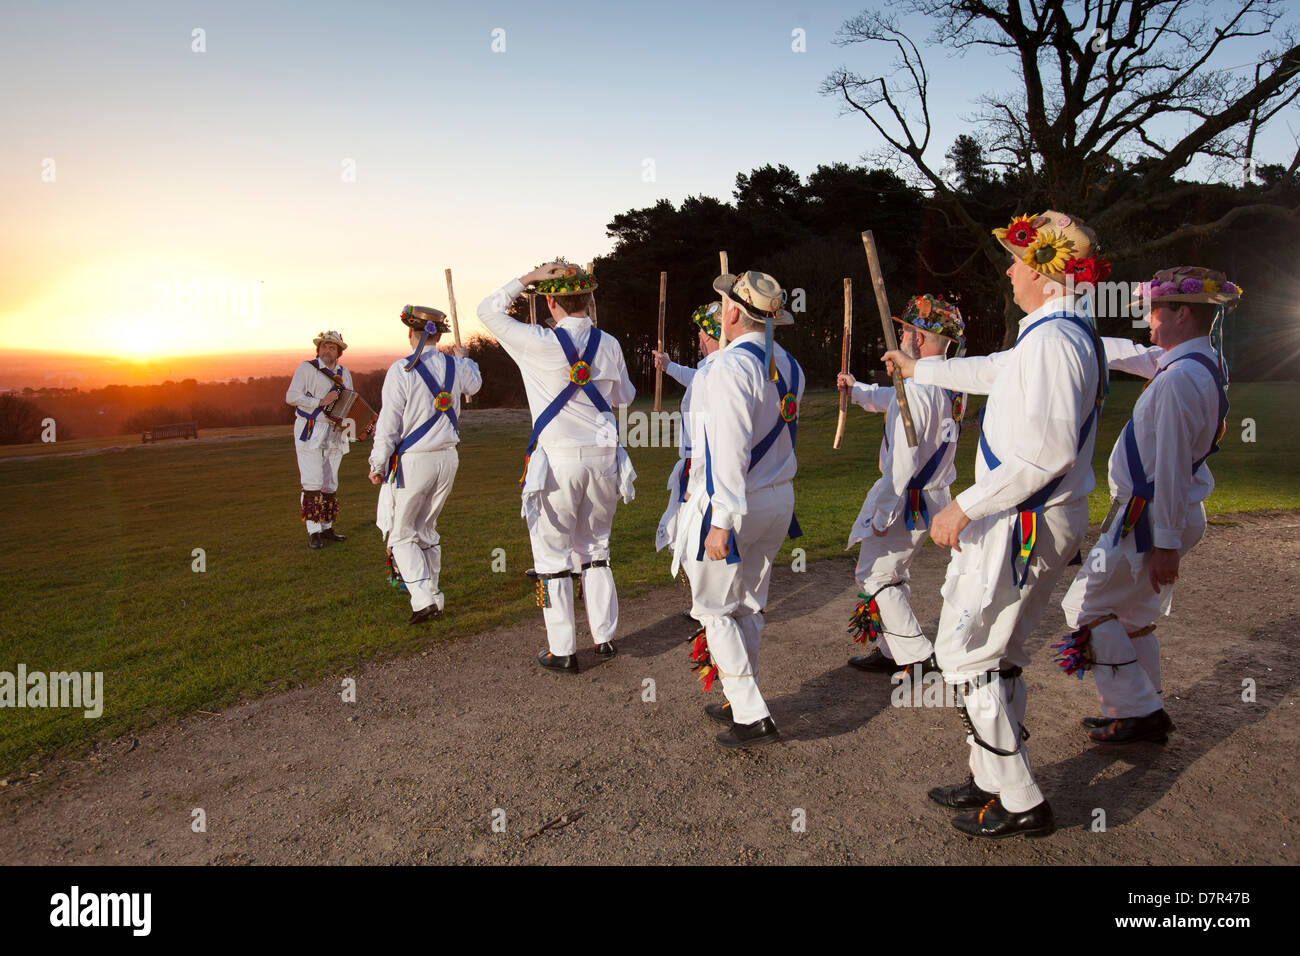 The Jockey Morris Men of Birmingham dance in the first sunrise on the first day of May at Lickey Hills Country Park, - Stock Image